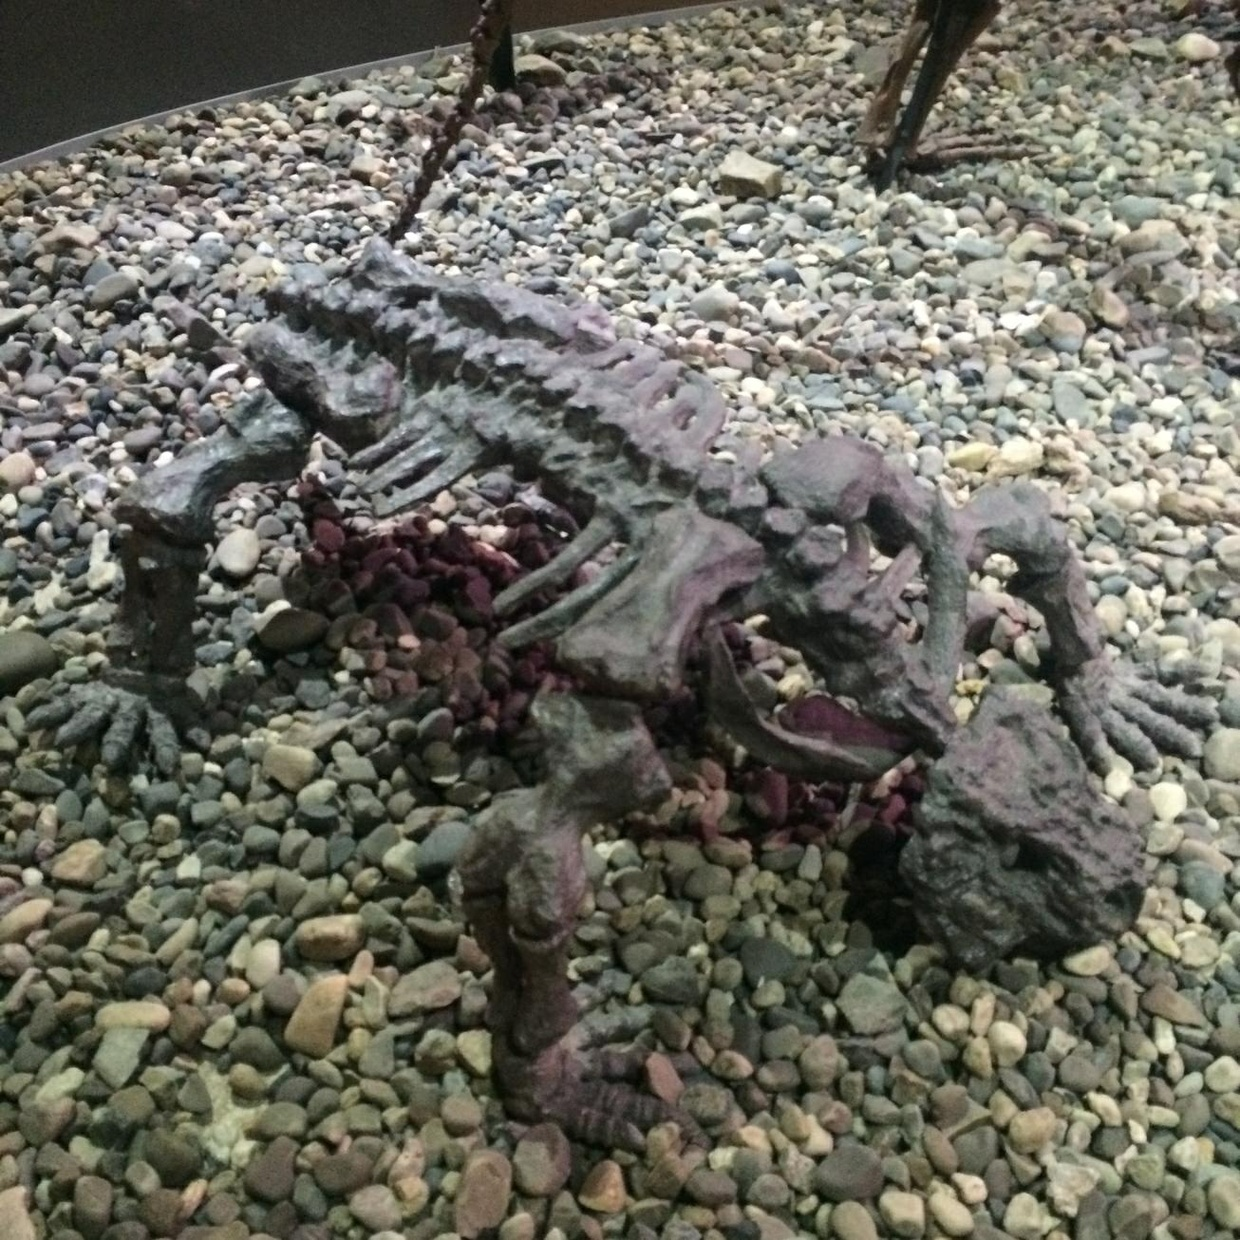 Fossils of an ancient animal!